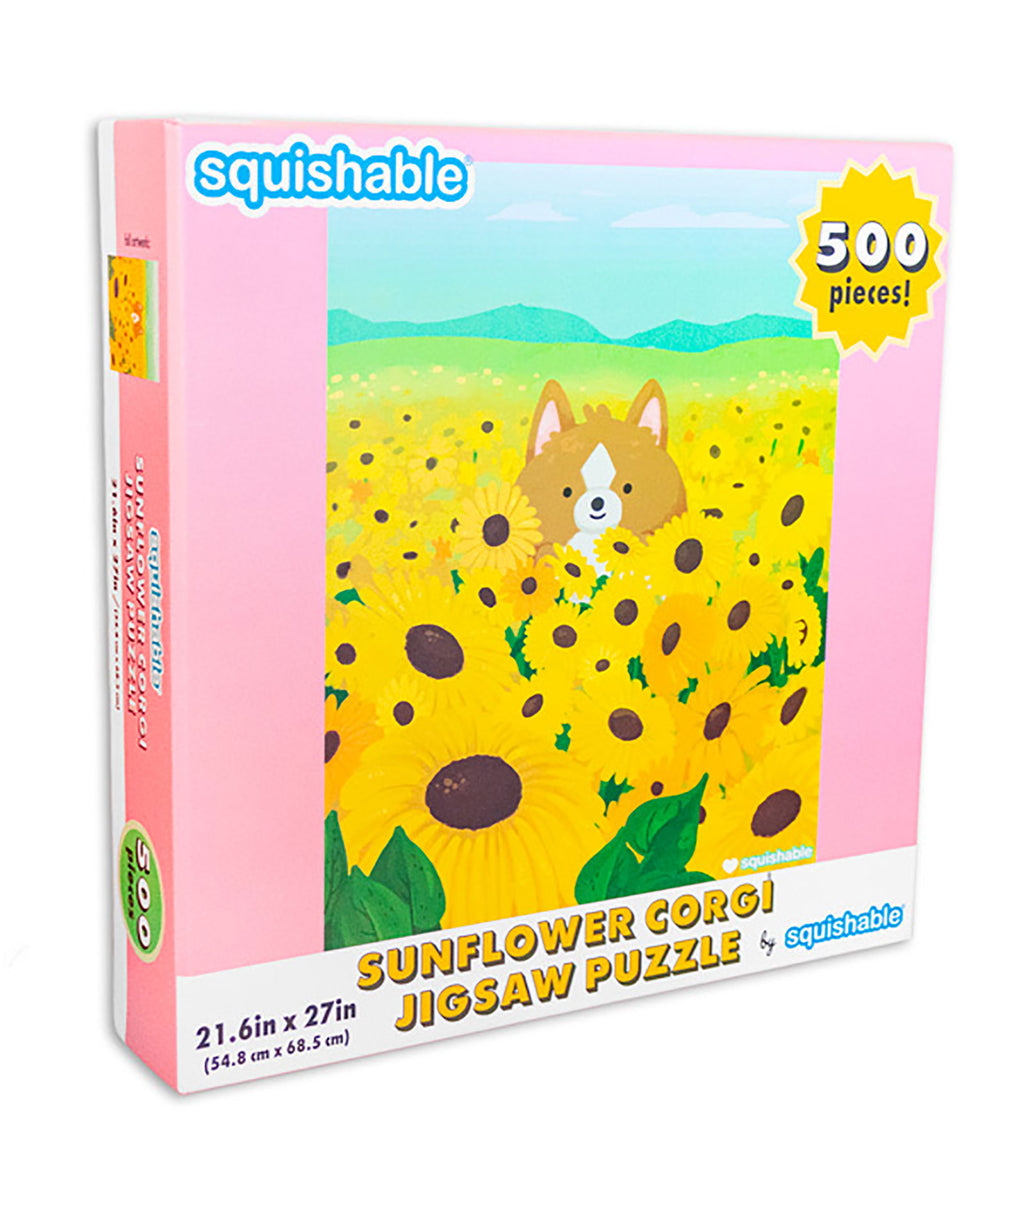 Squishable Puzzle Sunflower Corgi